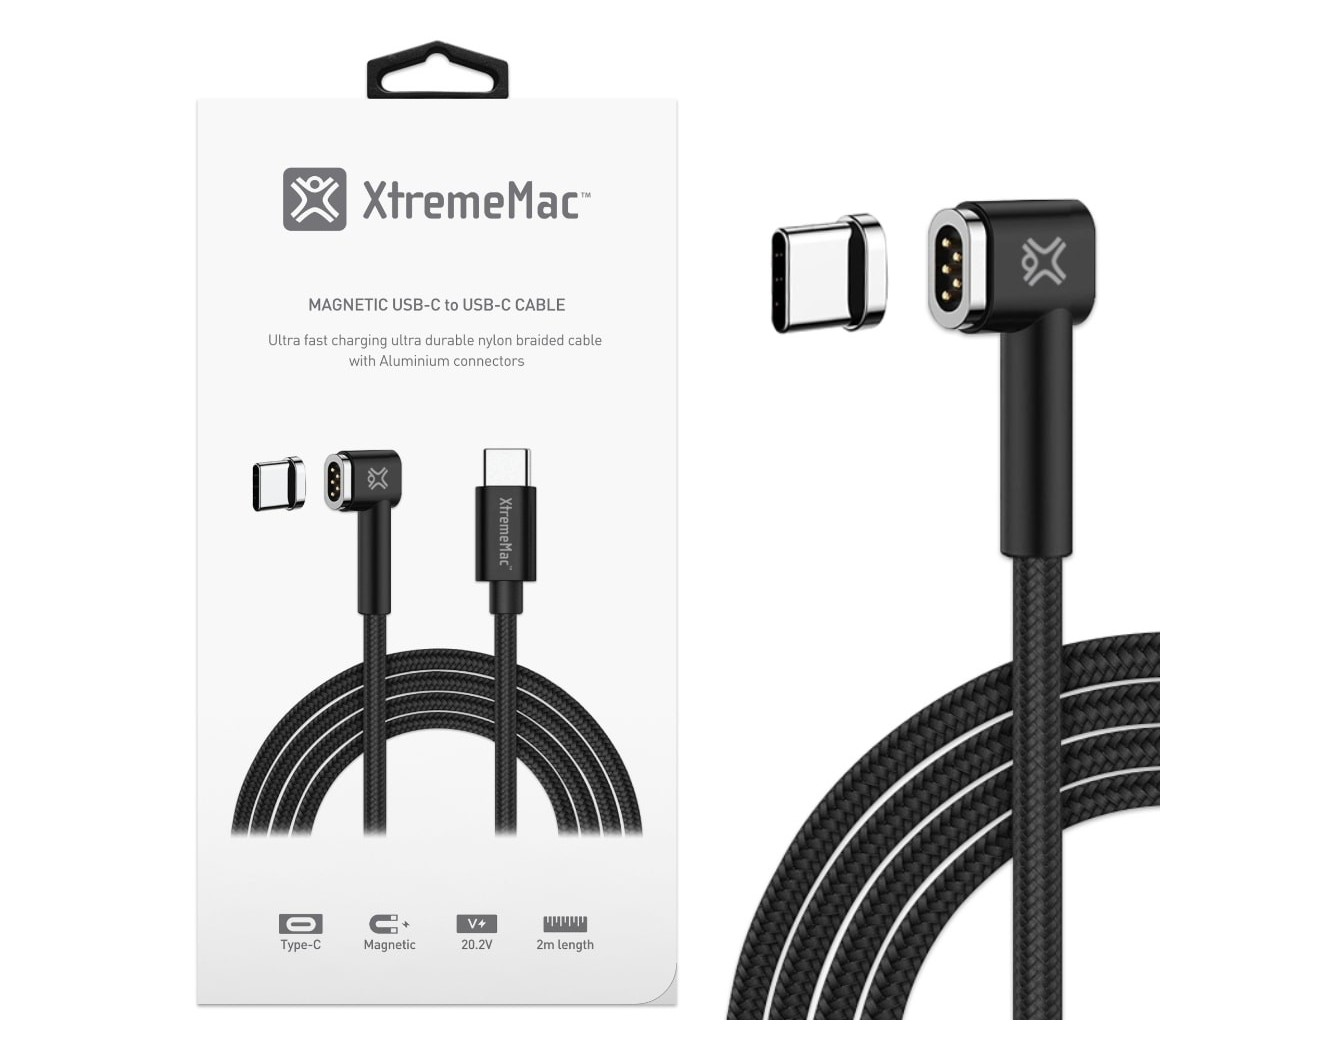 Кабел XtremeMac Magnetic USB-C to USB-C Cable - 2m - Black